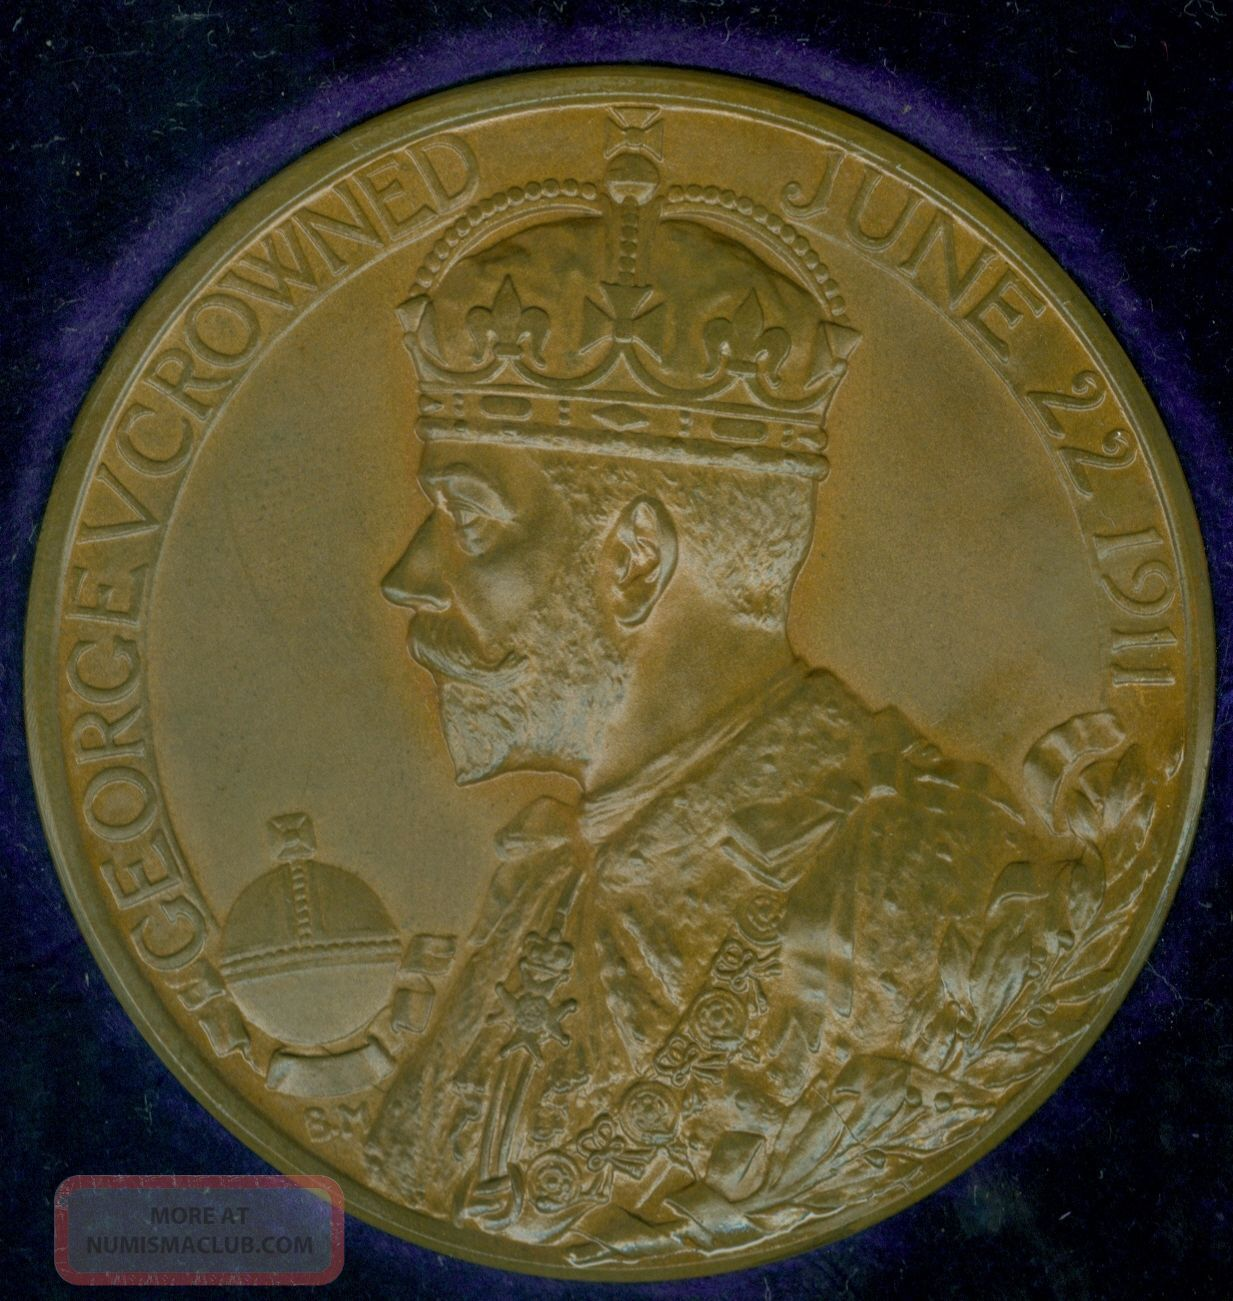 1911 British Medal Issued For The Coronation Of King George V,  By B.  Mackennal Exonumia photo